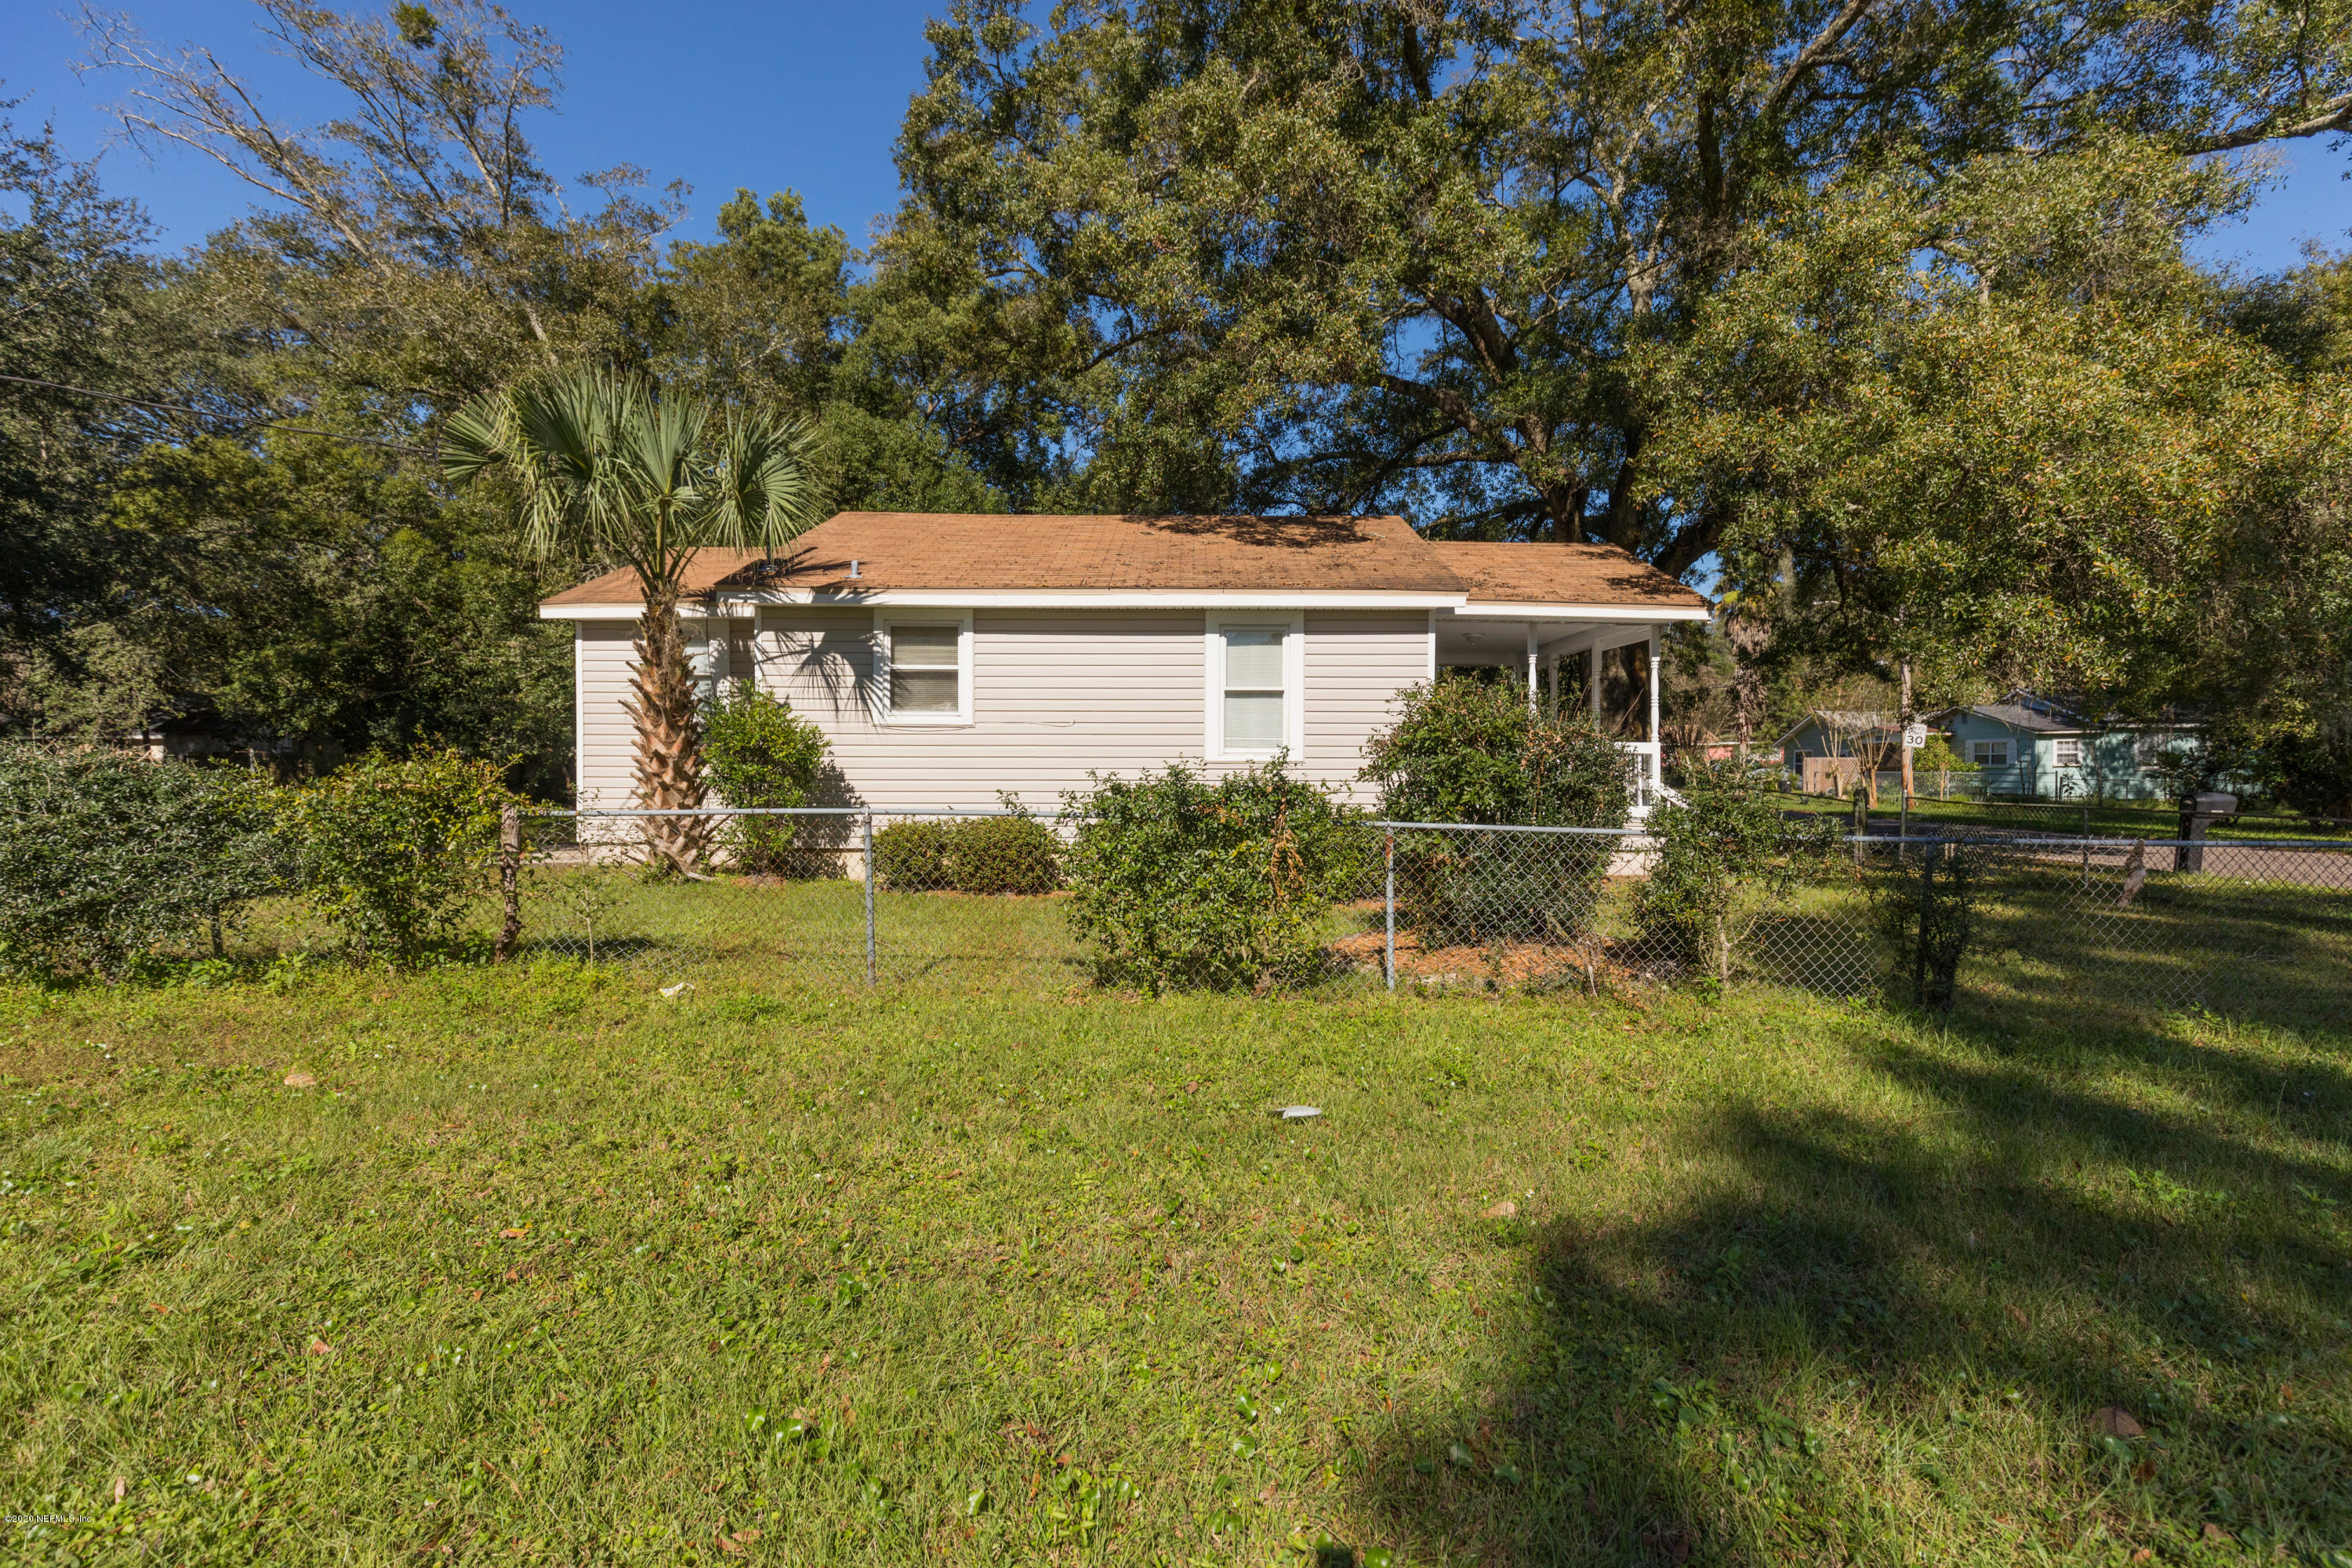 1202 ST CLAIR, JACKSONVILLE, FLORIDA 32254, 3 Bedrooms Bedrooms, ,1 BathroomBathrooms,Residential,For sale,ST CLAIR,1083286